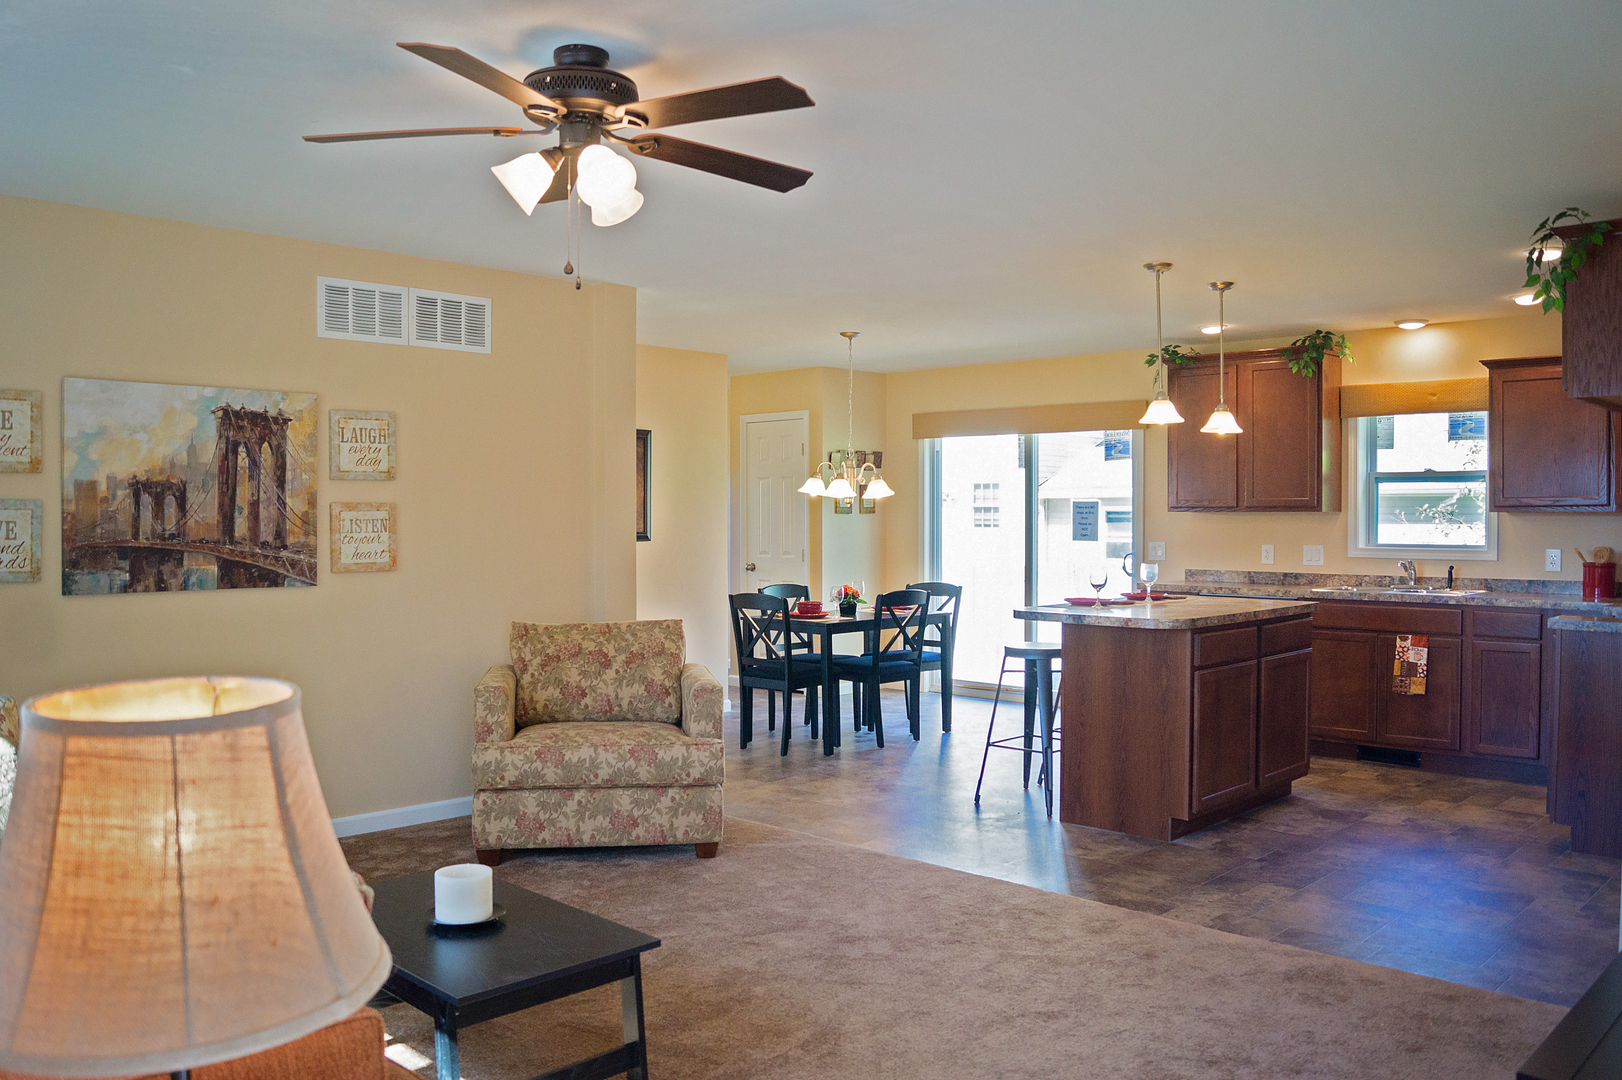 Peaceful Living Home Sales image 4